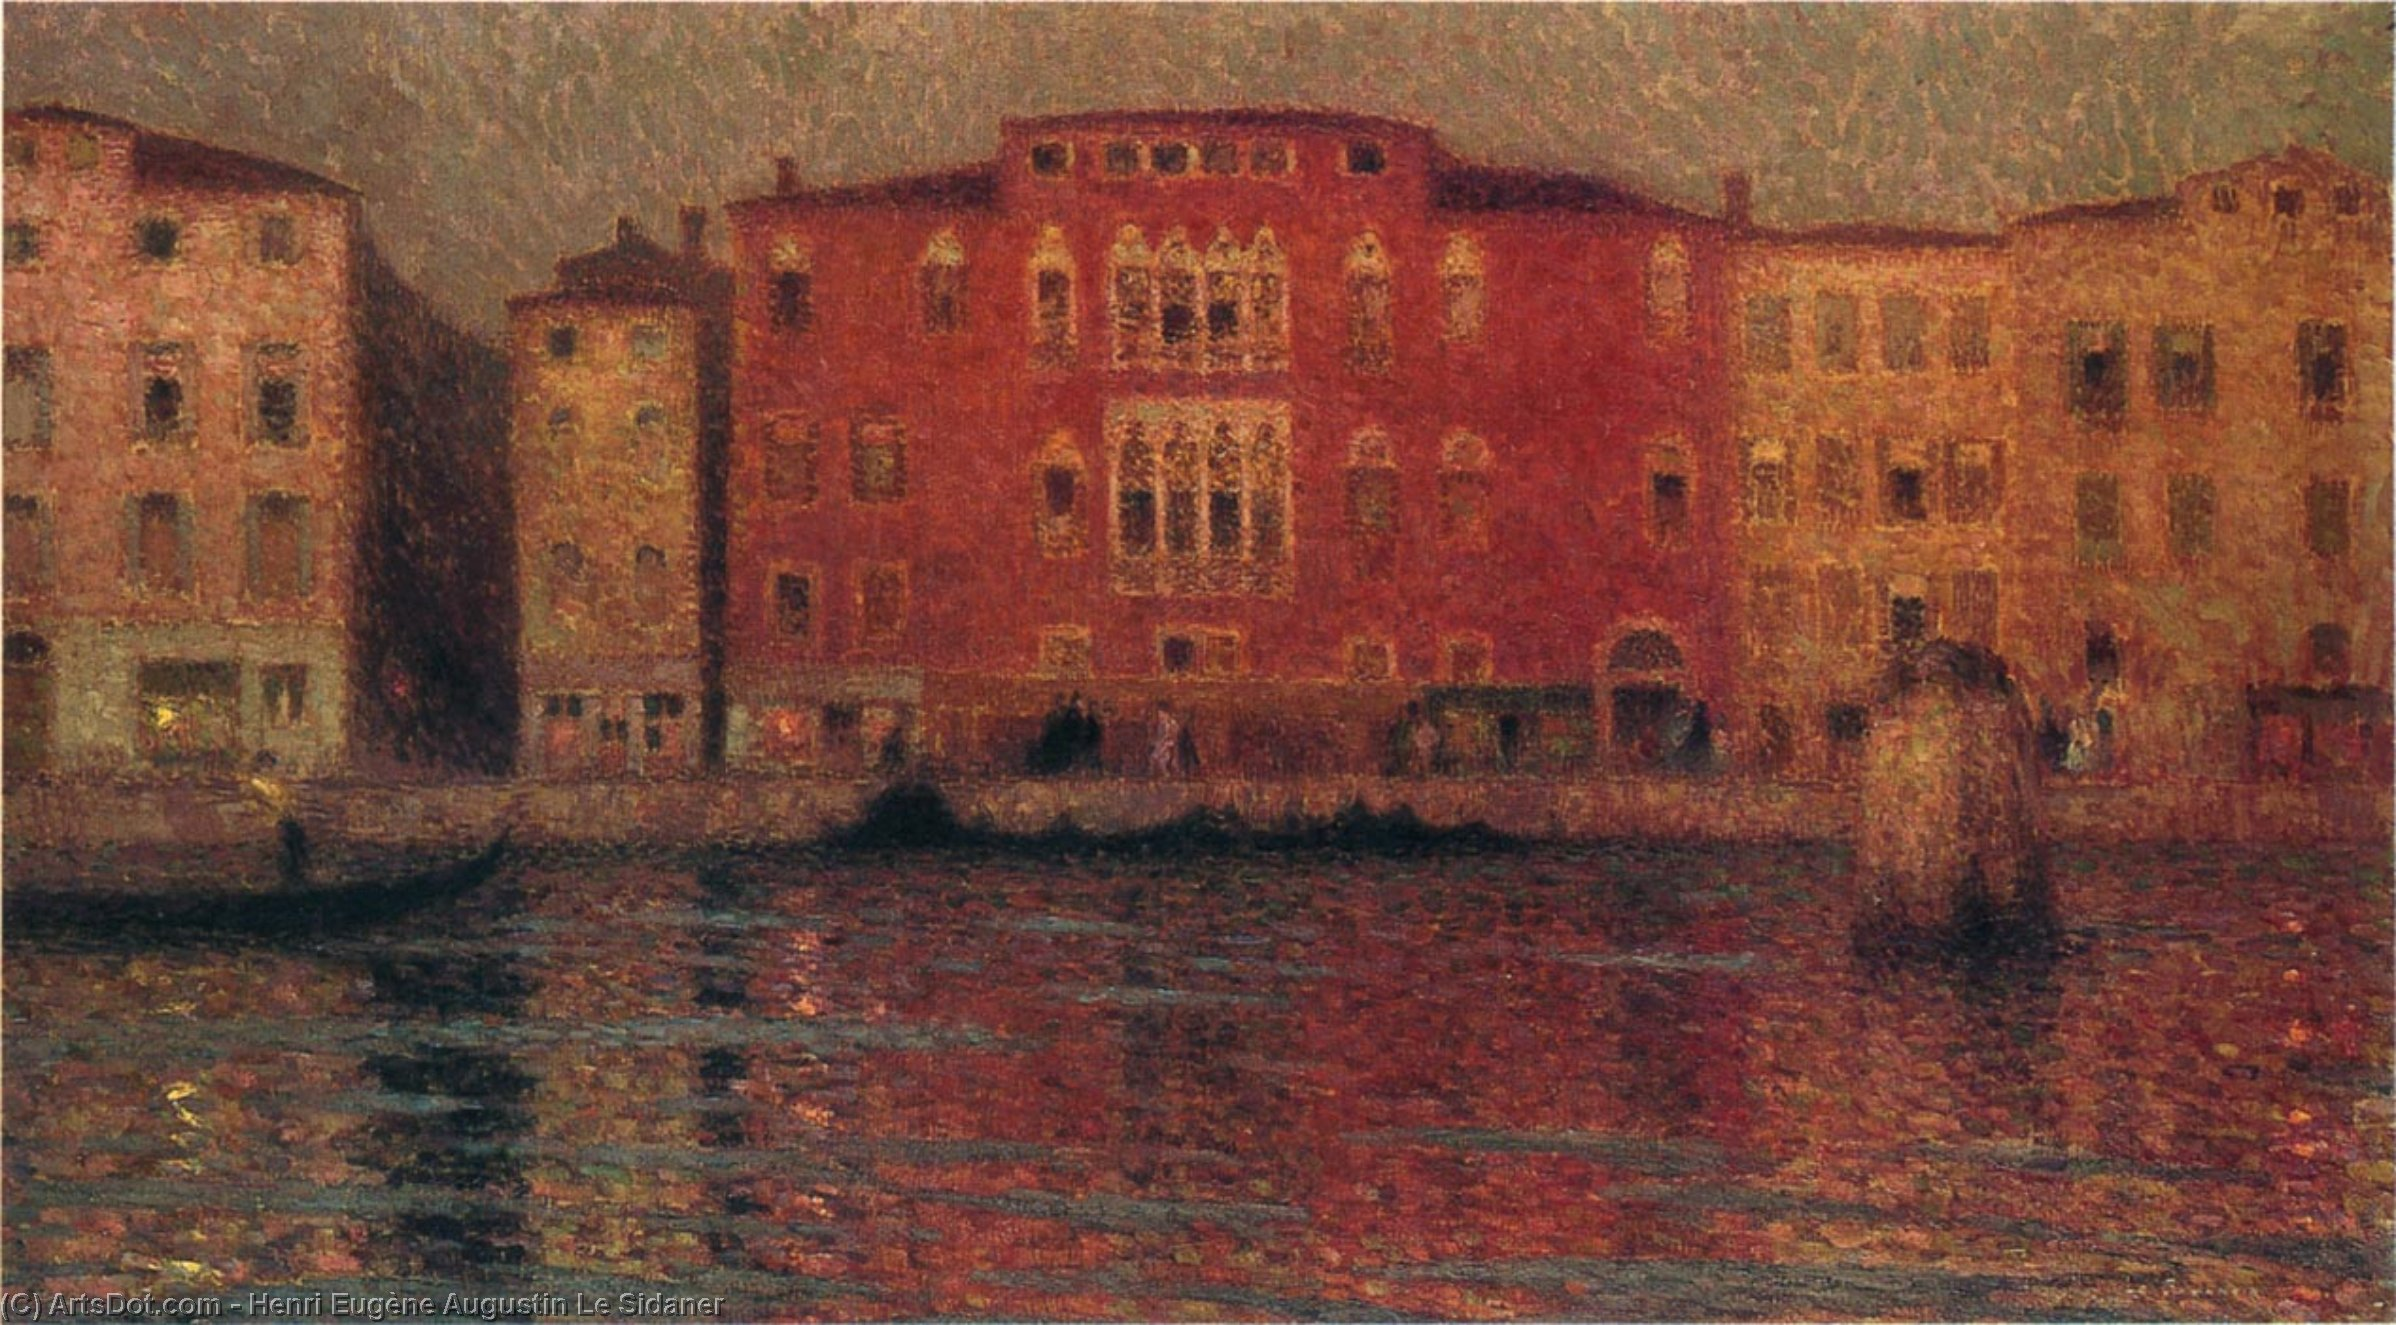 The Red Palace in Venice, Oil On Canvas by Henri Eugène Augustin Le Sidaner (1862-1939, Mauritius)